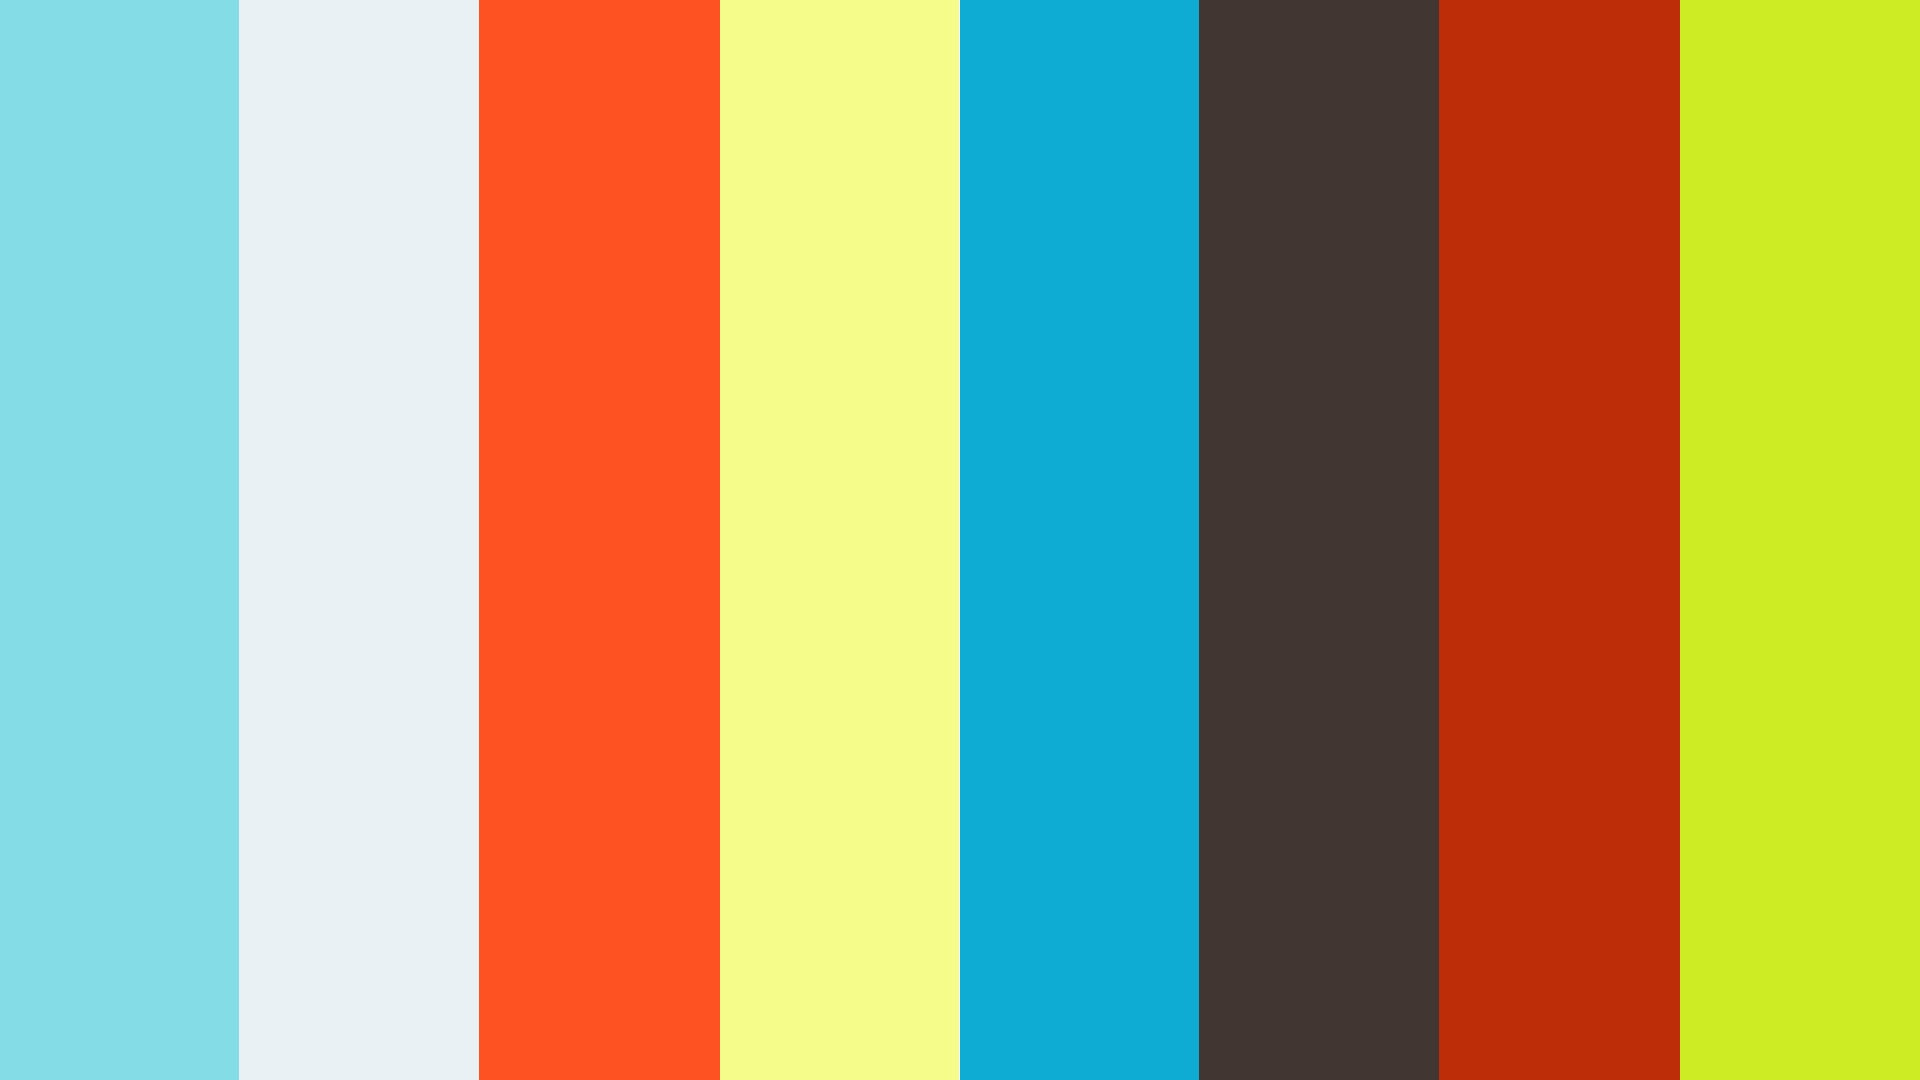 Watch DV MISSION 2010 - Paracetemol on our Free Roku Channel